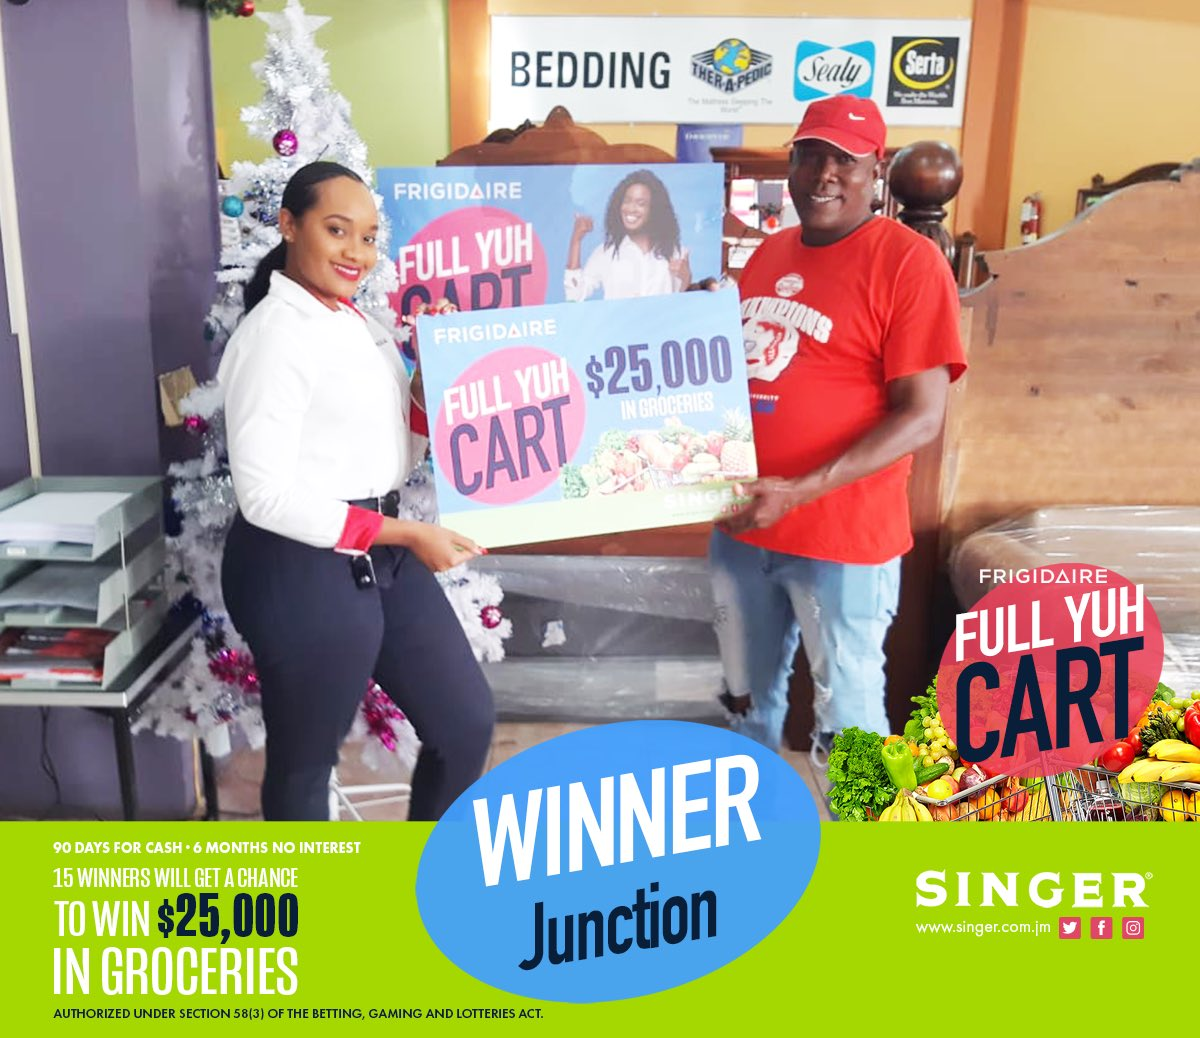 A series of fortunate events Thank you to everyone who shopped with us this Christmas Here's a few of our #Frigidaire Full YUH Cart winners!  ⁣ Visit our FB page for all our winners!⁣ #SingerJamaica #HappyHome #Appliances #Home #Jamaica #BestPrices #Giveawaypic.twitter.com/ZhjhJmAh46